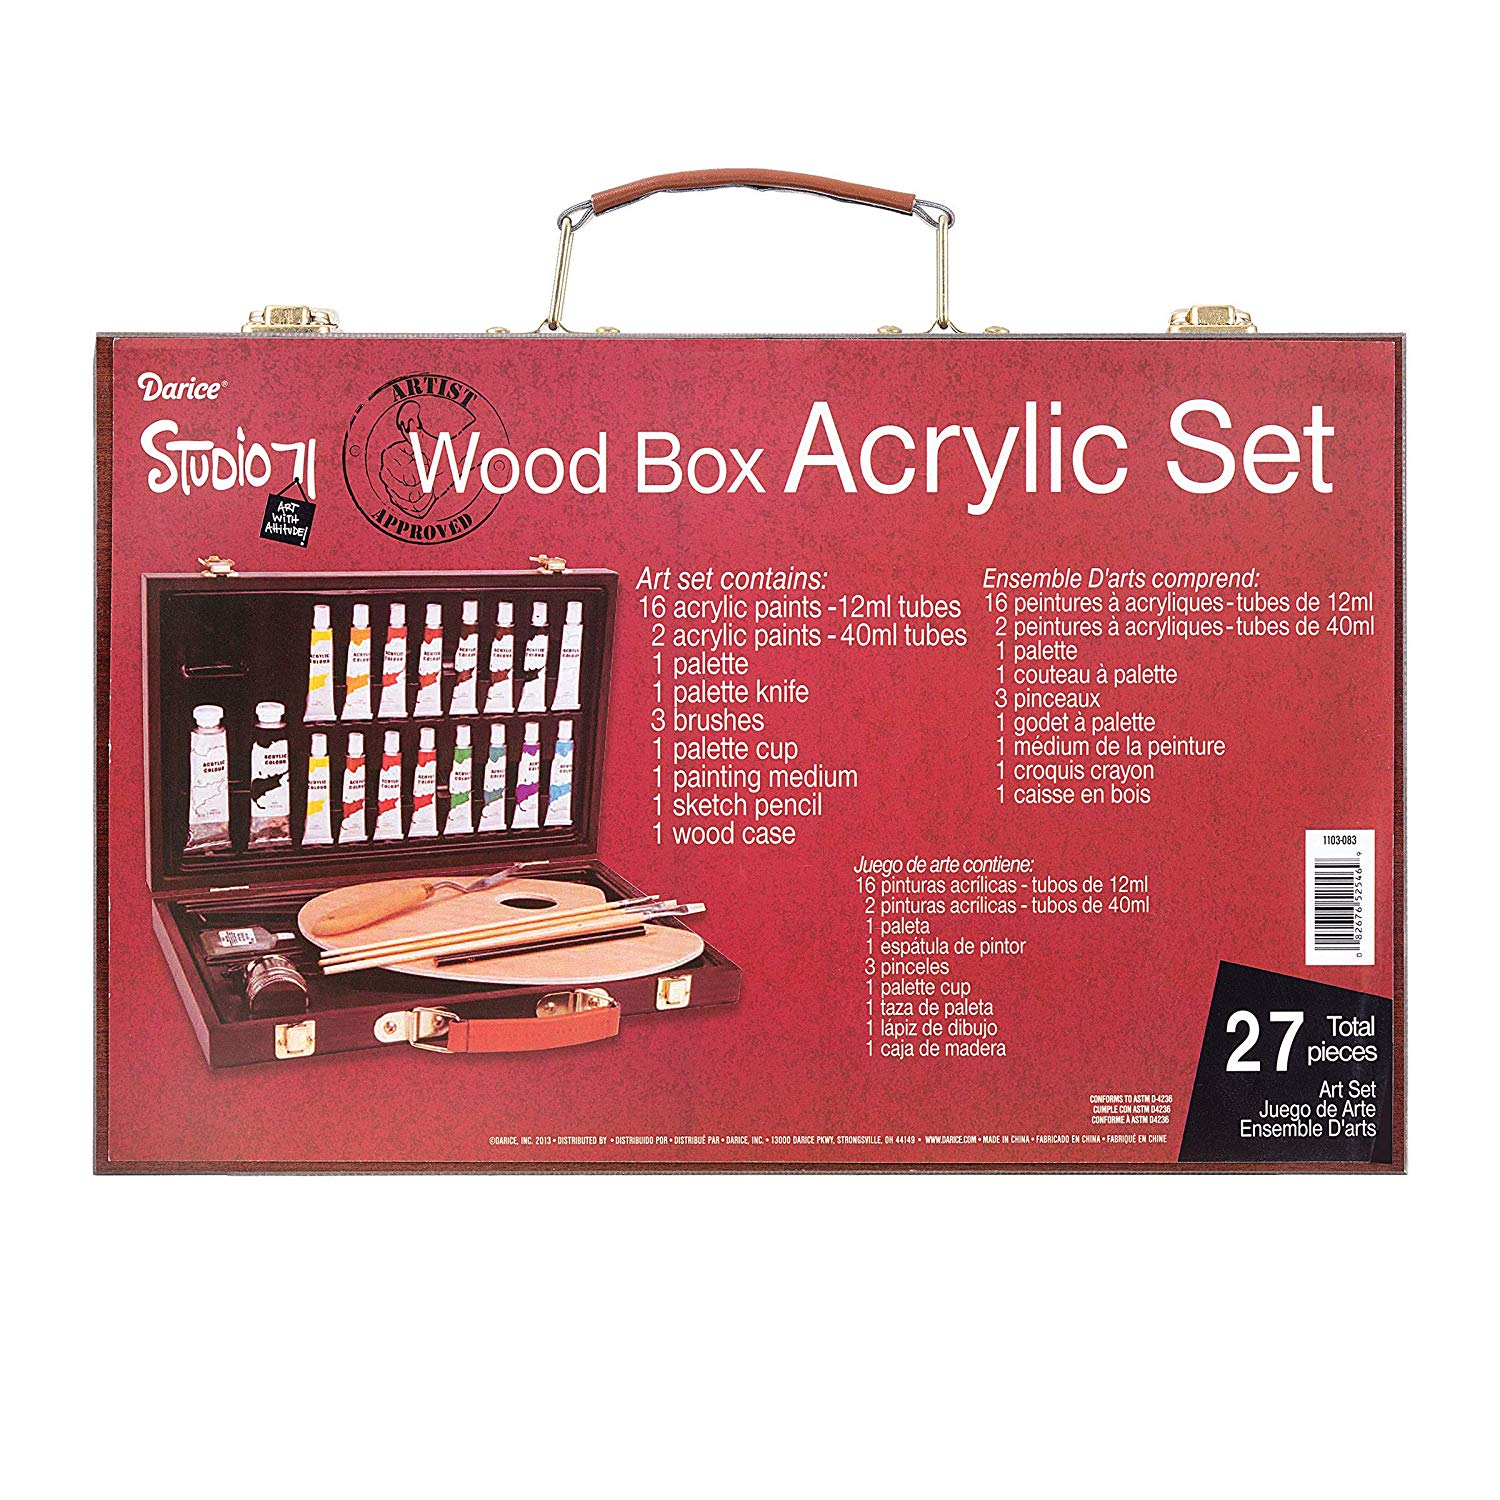 Acrylic Painting Set, Wood Box - golden birthday gift ideas for her